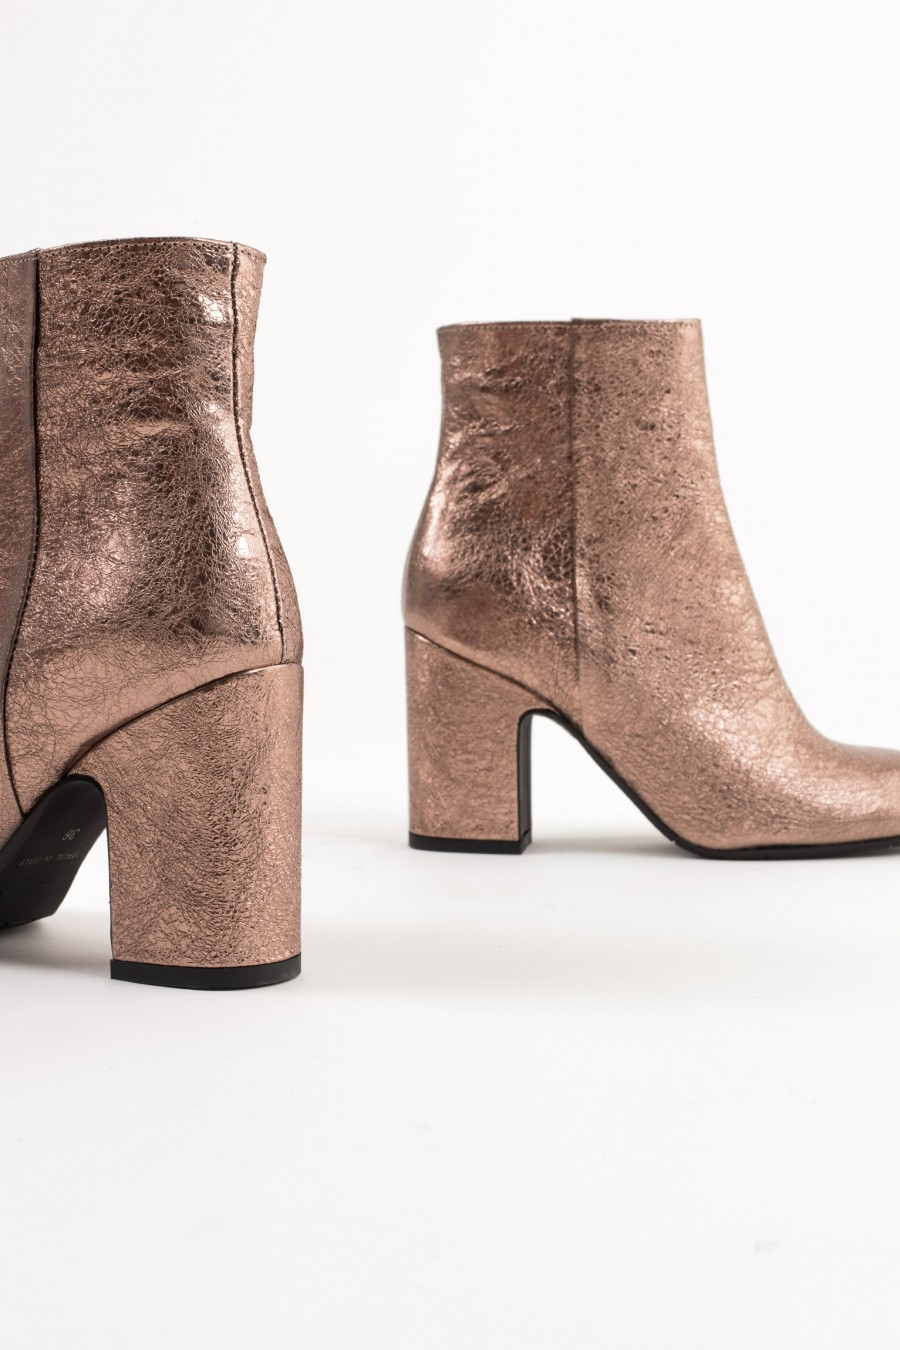 Fancy pink metallic leather ankle boots